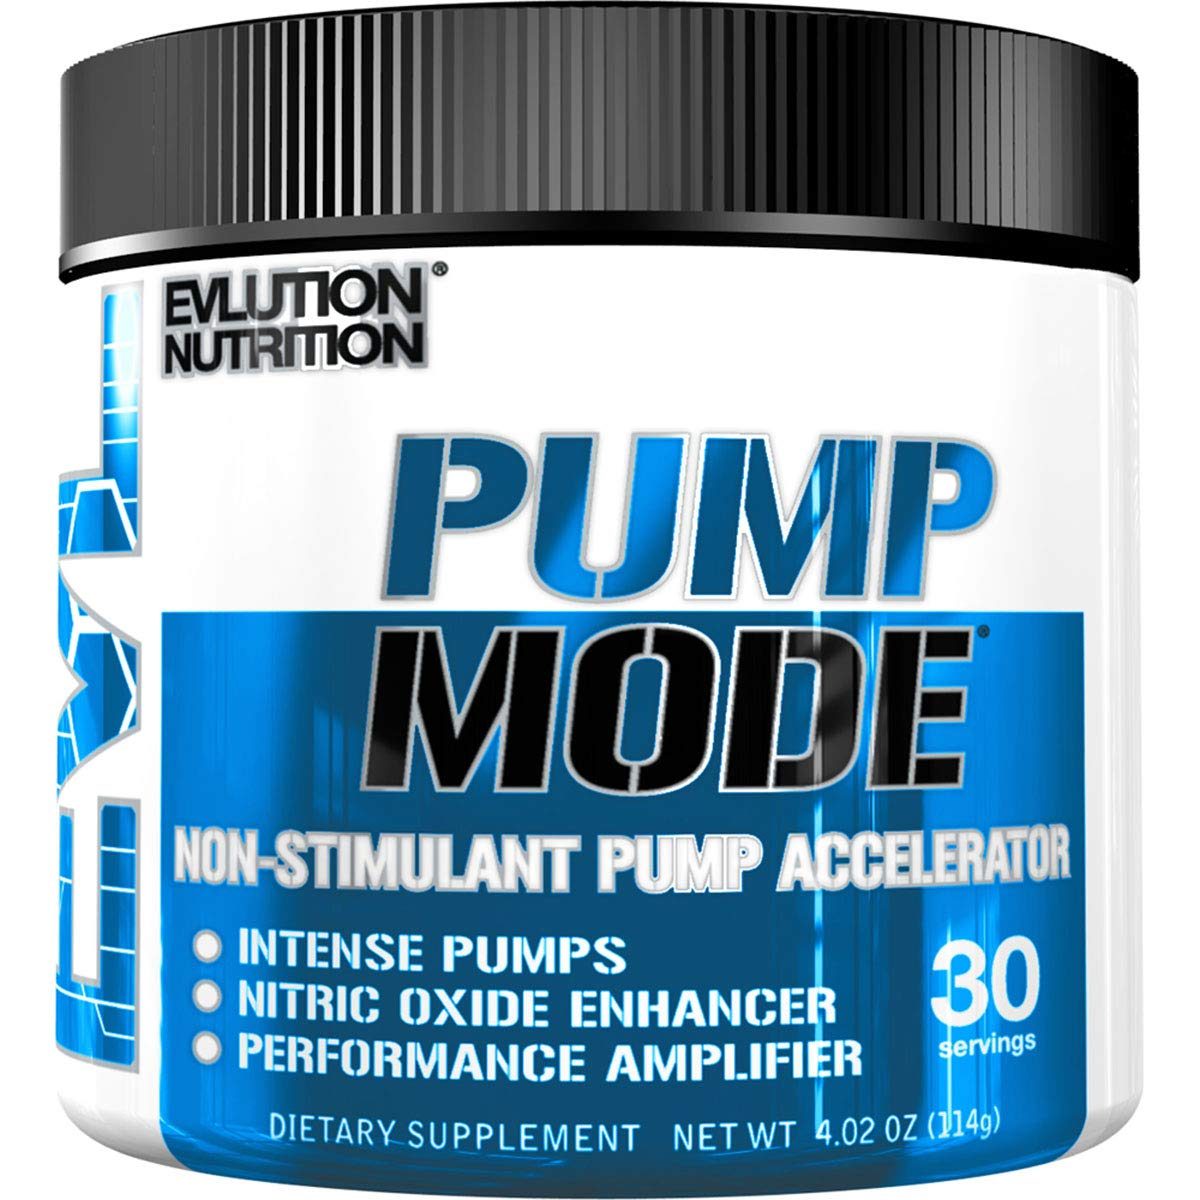 Evlution Nutrition Pump Mode Nitric Oxide Booster to Support Intense Pumps, Performance and Vascularity (Unflavored, 30 Servings) by Evlution